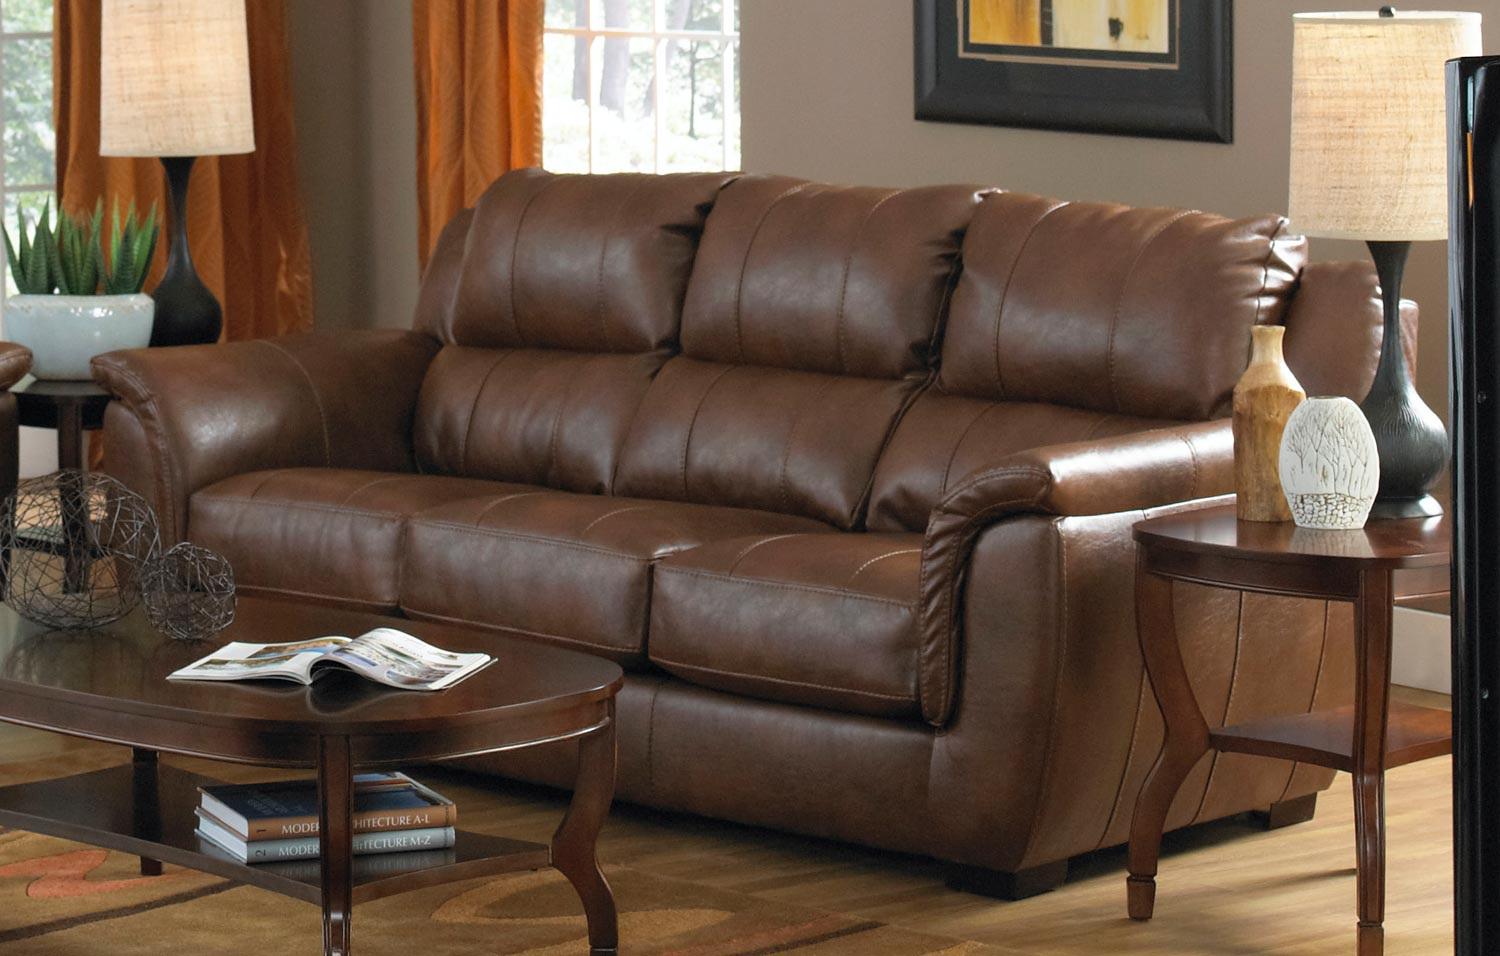 Jackson Verona Leather Sofa Chestnut